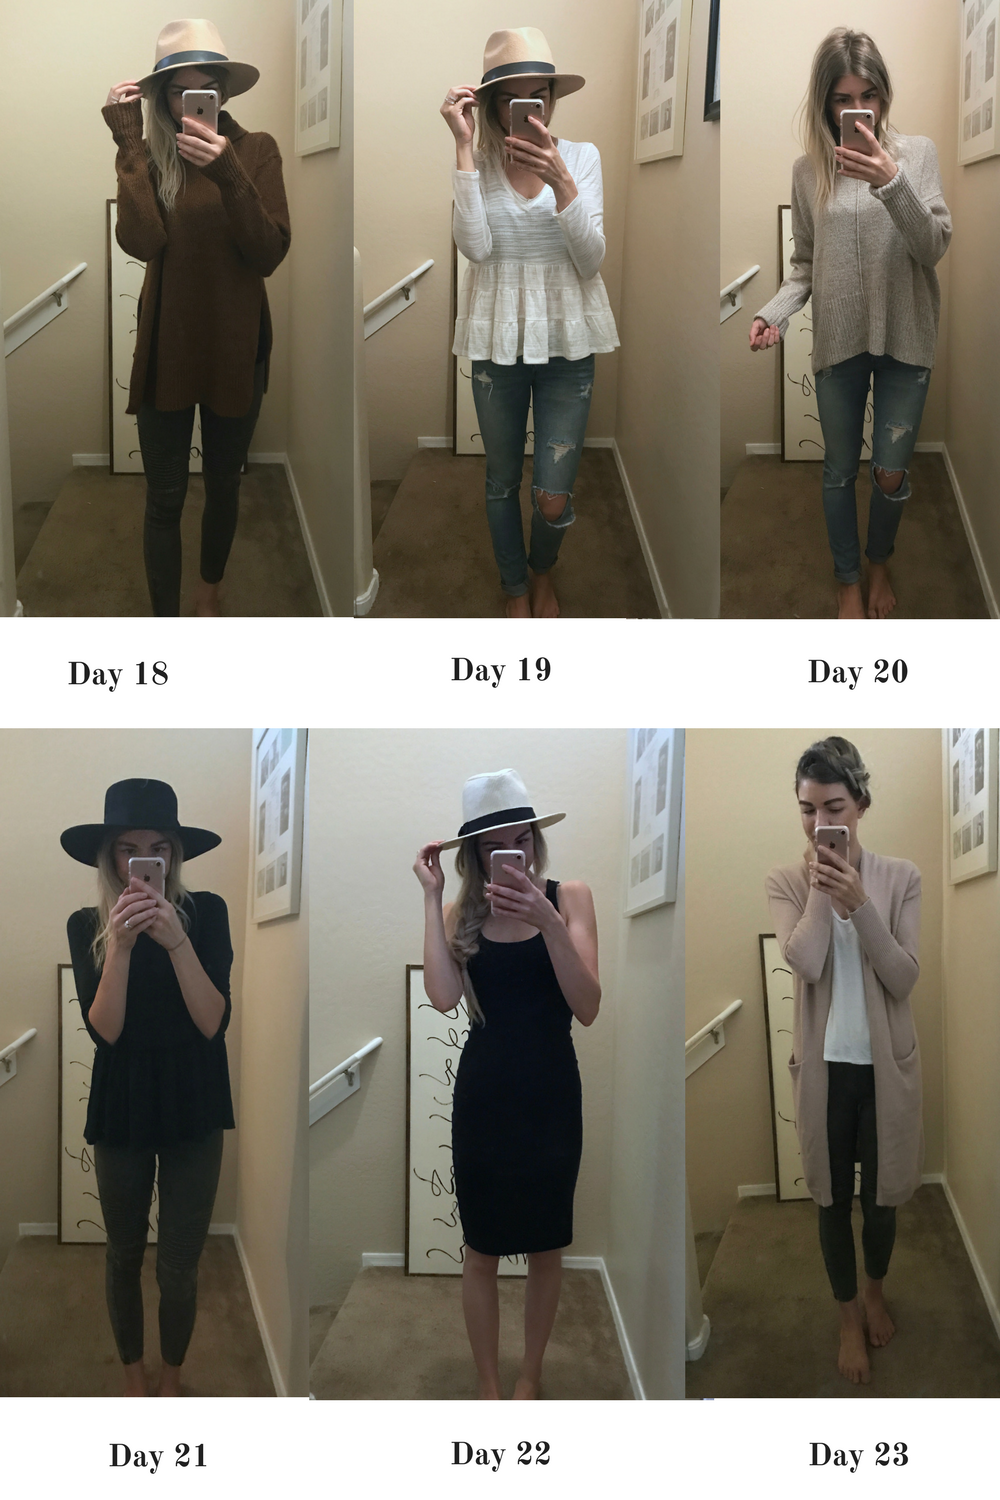 Lifestyle and fashion blogger Larissa of Living in Color shares a February Capsule Wardrobe. You can check out weeks 4 and 5 now.